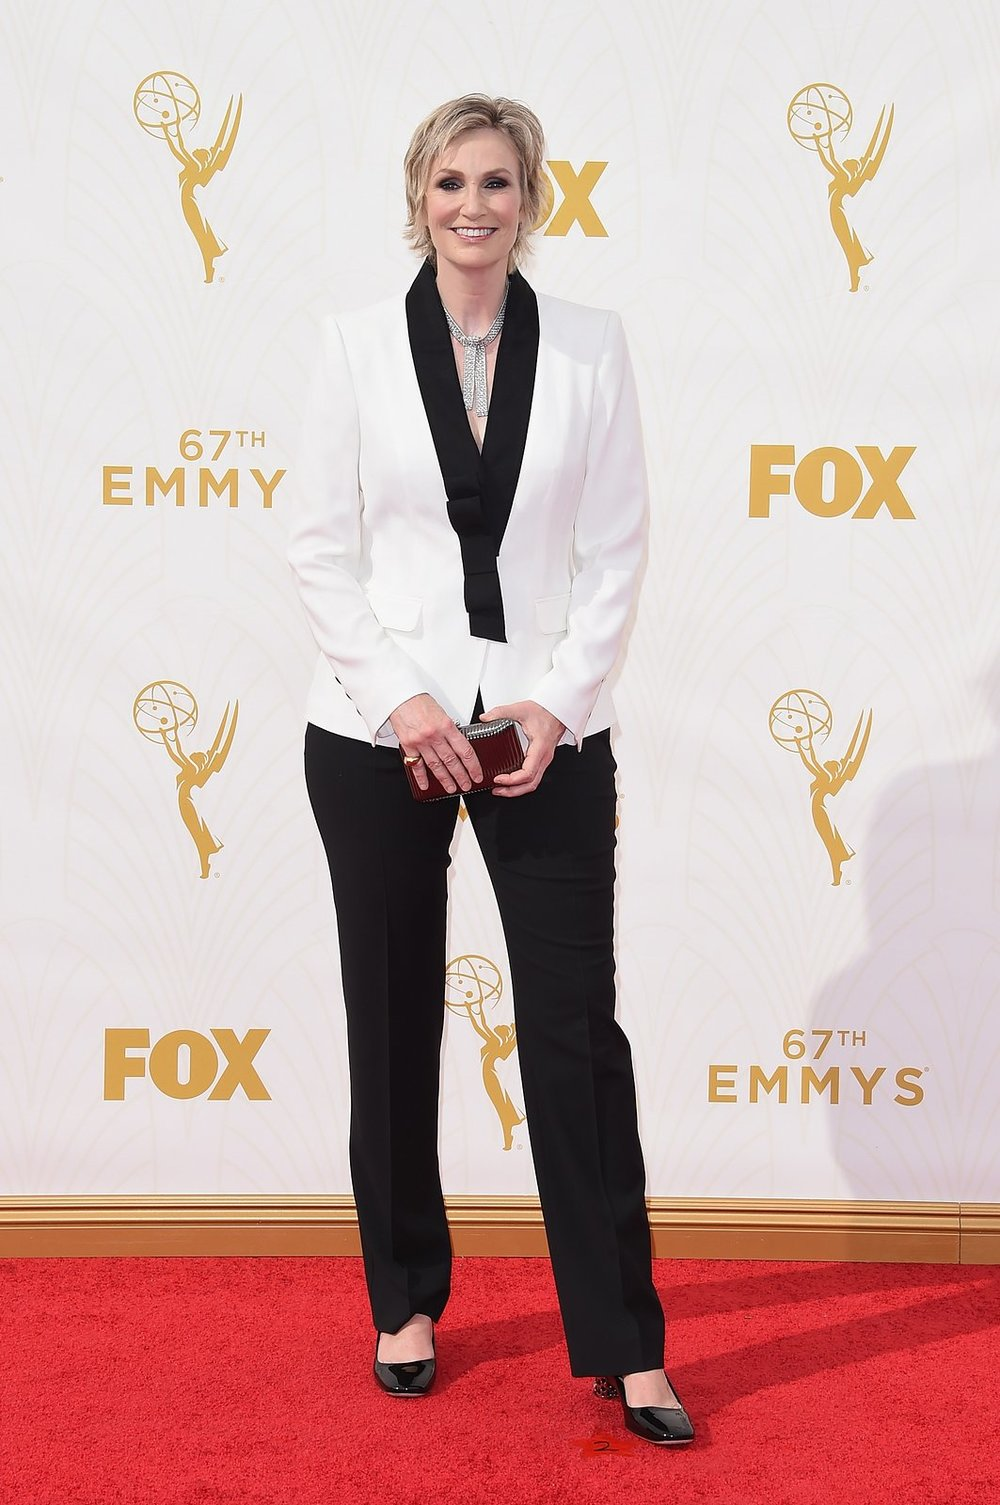 jane-lynch-emmys-red-carpet-2015.jpg